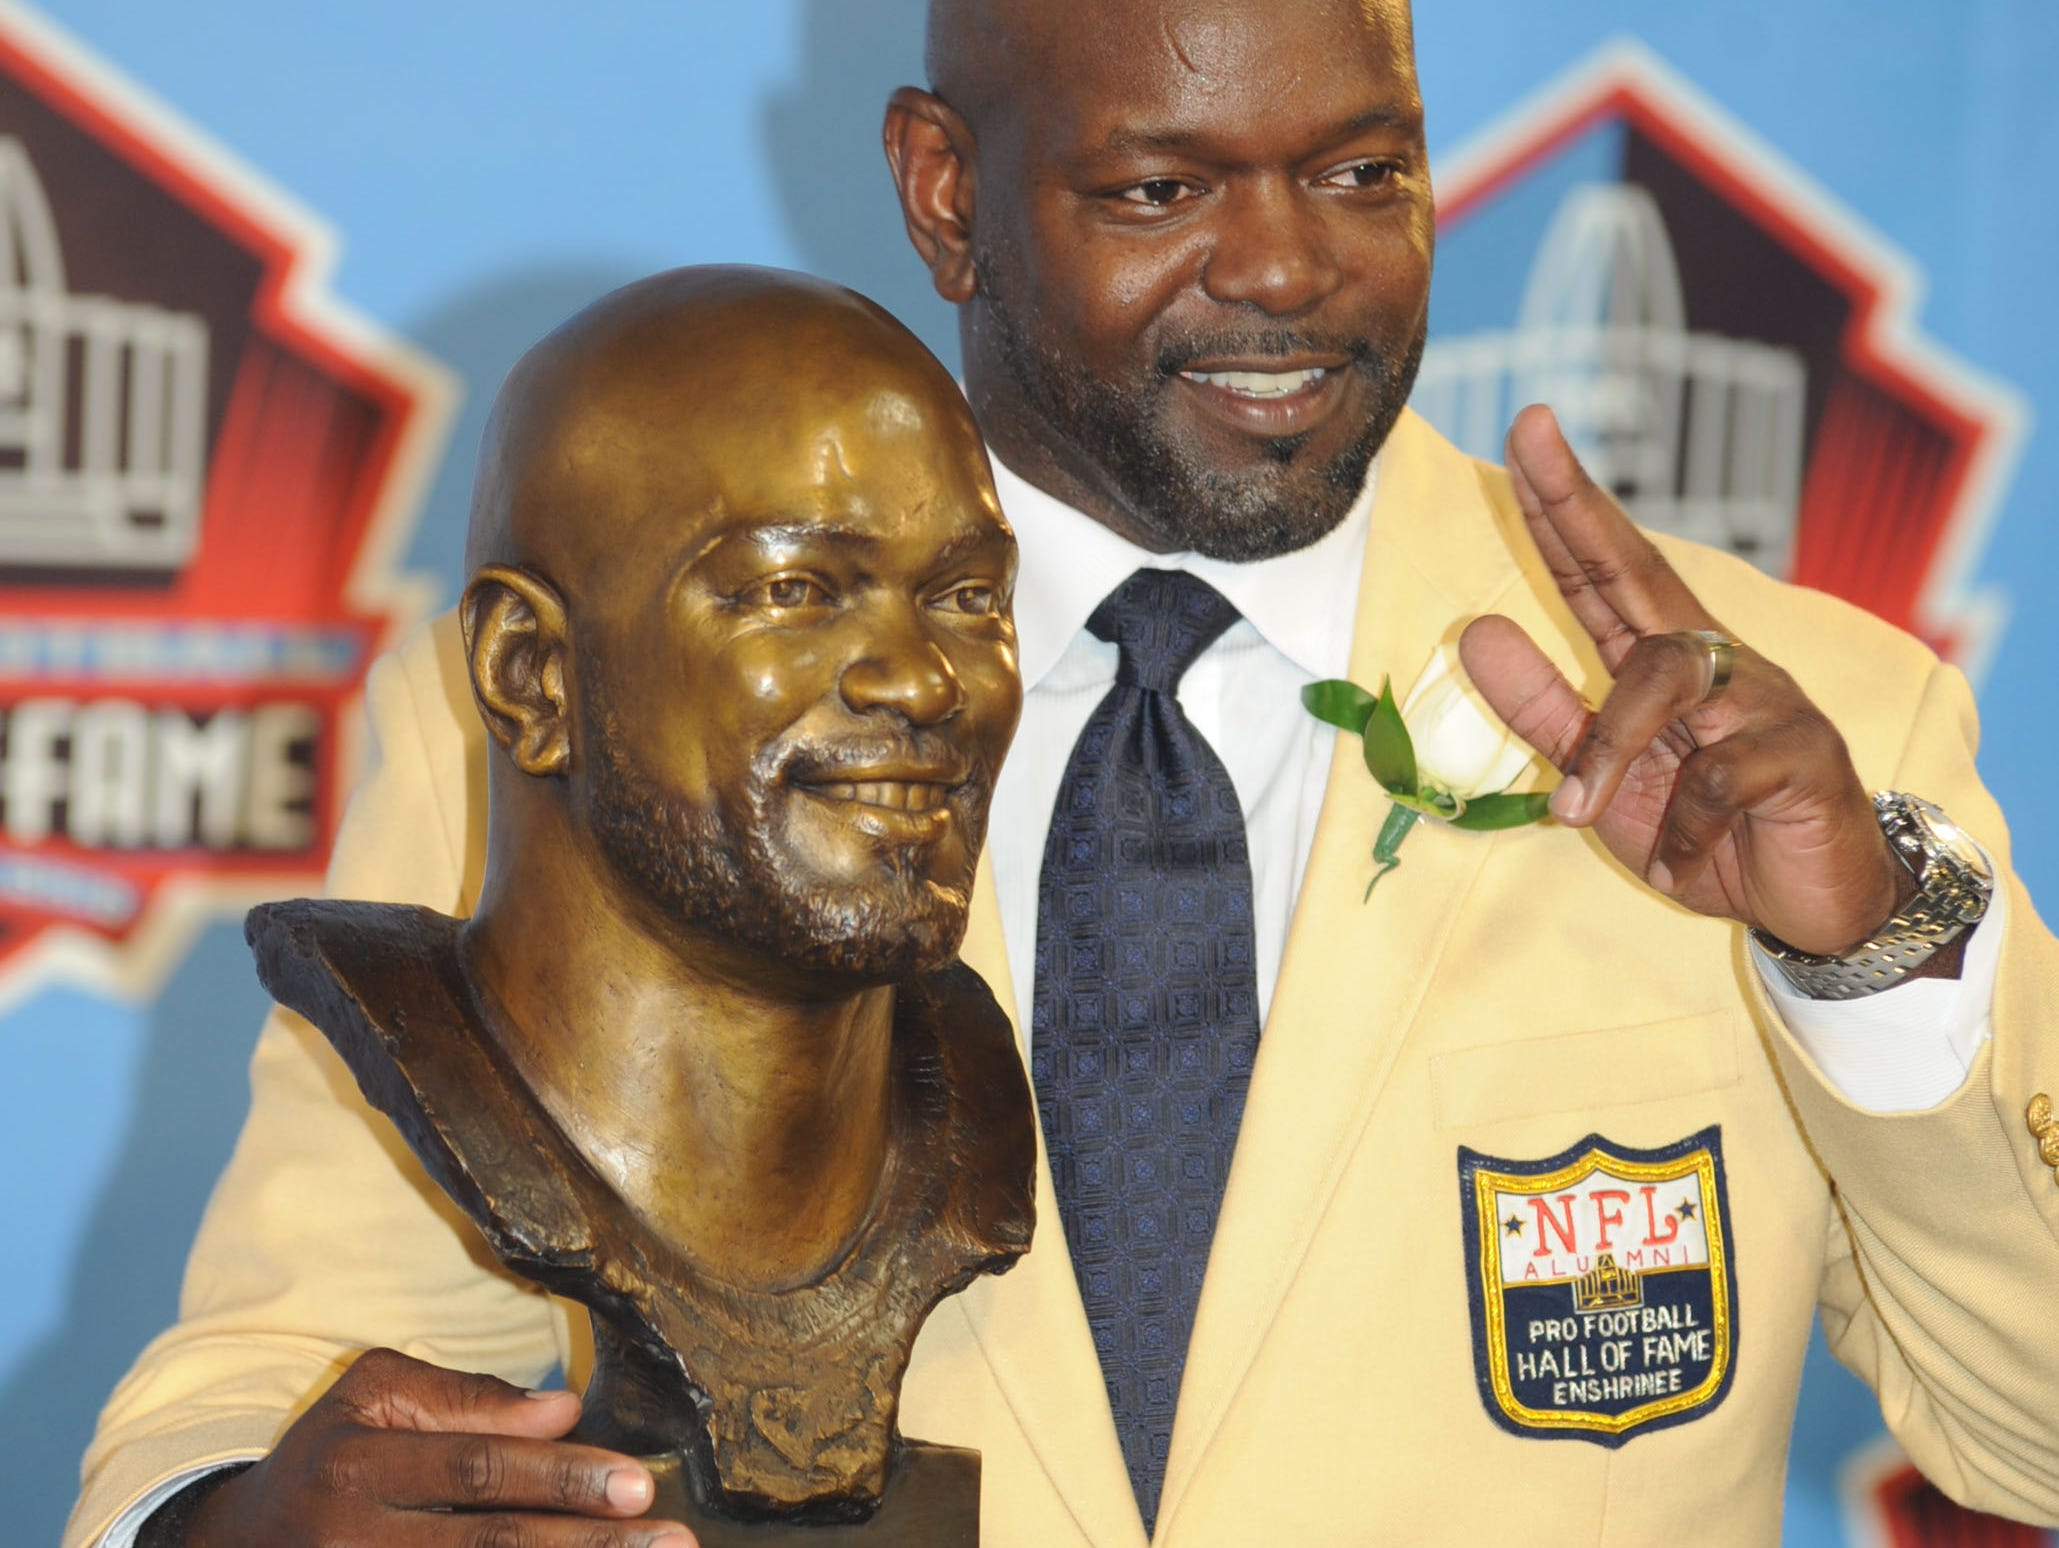 fEmmitt Smith stands with his bronzed bust following his enshrinement speech at the Pro Football Hall of Fame ceremony.